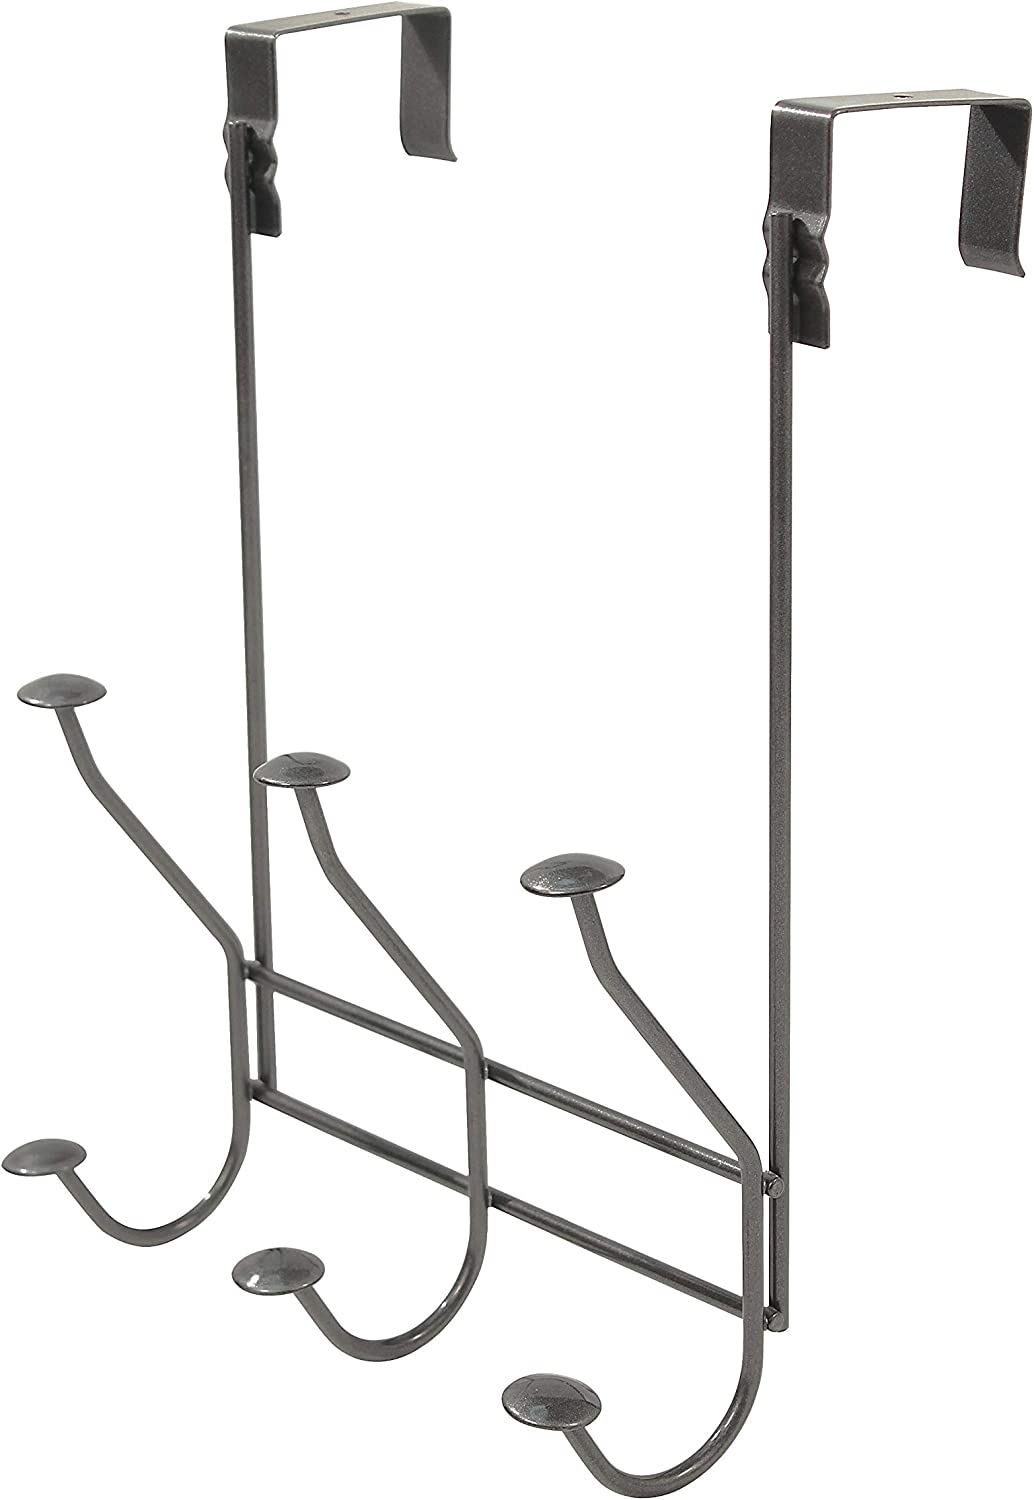 Spectrum Diversified Windsor 3, Door Hooks for Closet Bathroom & Laundry Room, Jacket & Towel Rack, Clothes Hanger for Small Spaces, Industrial Gray